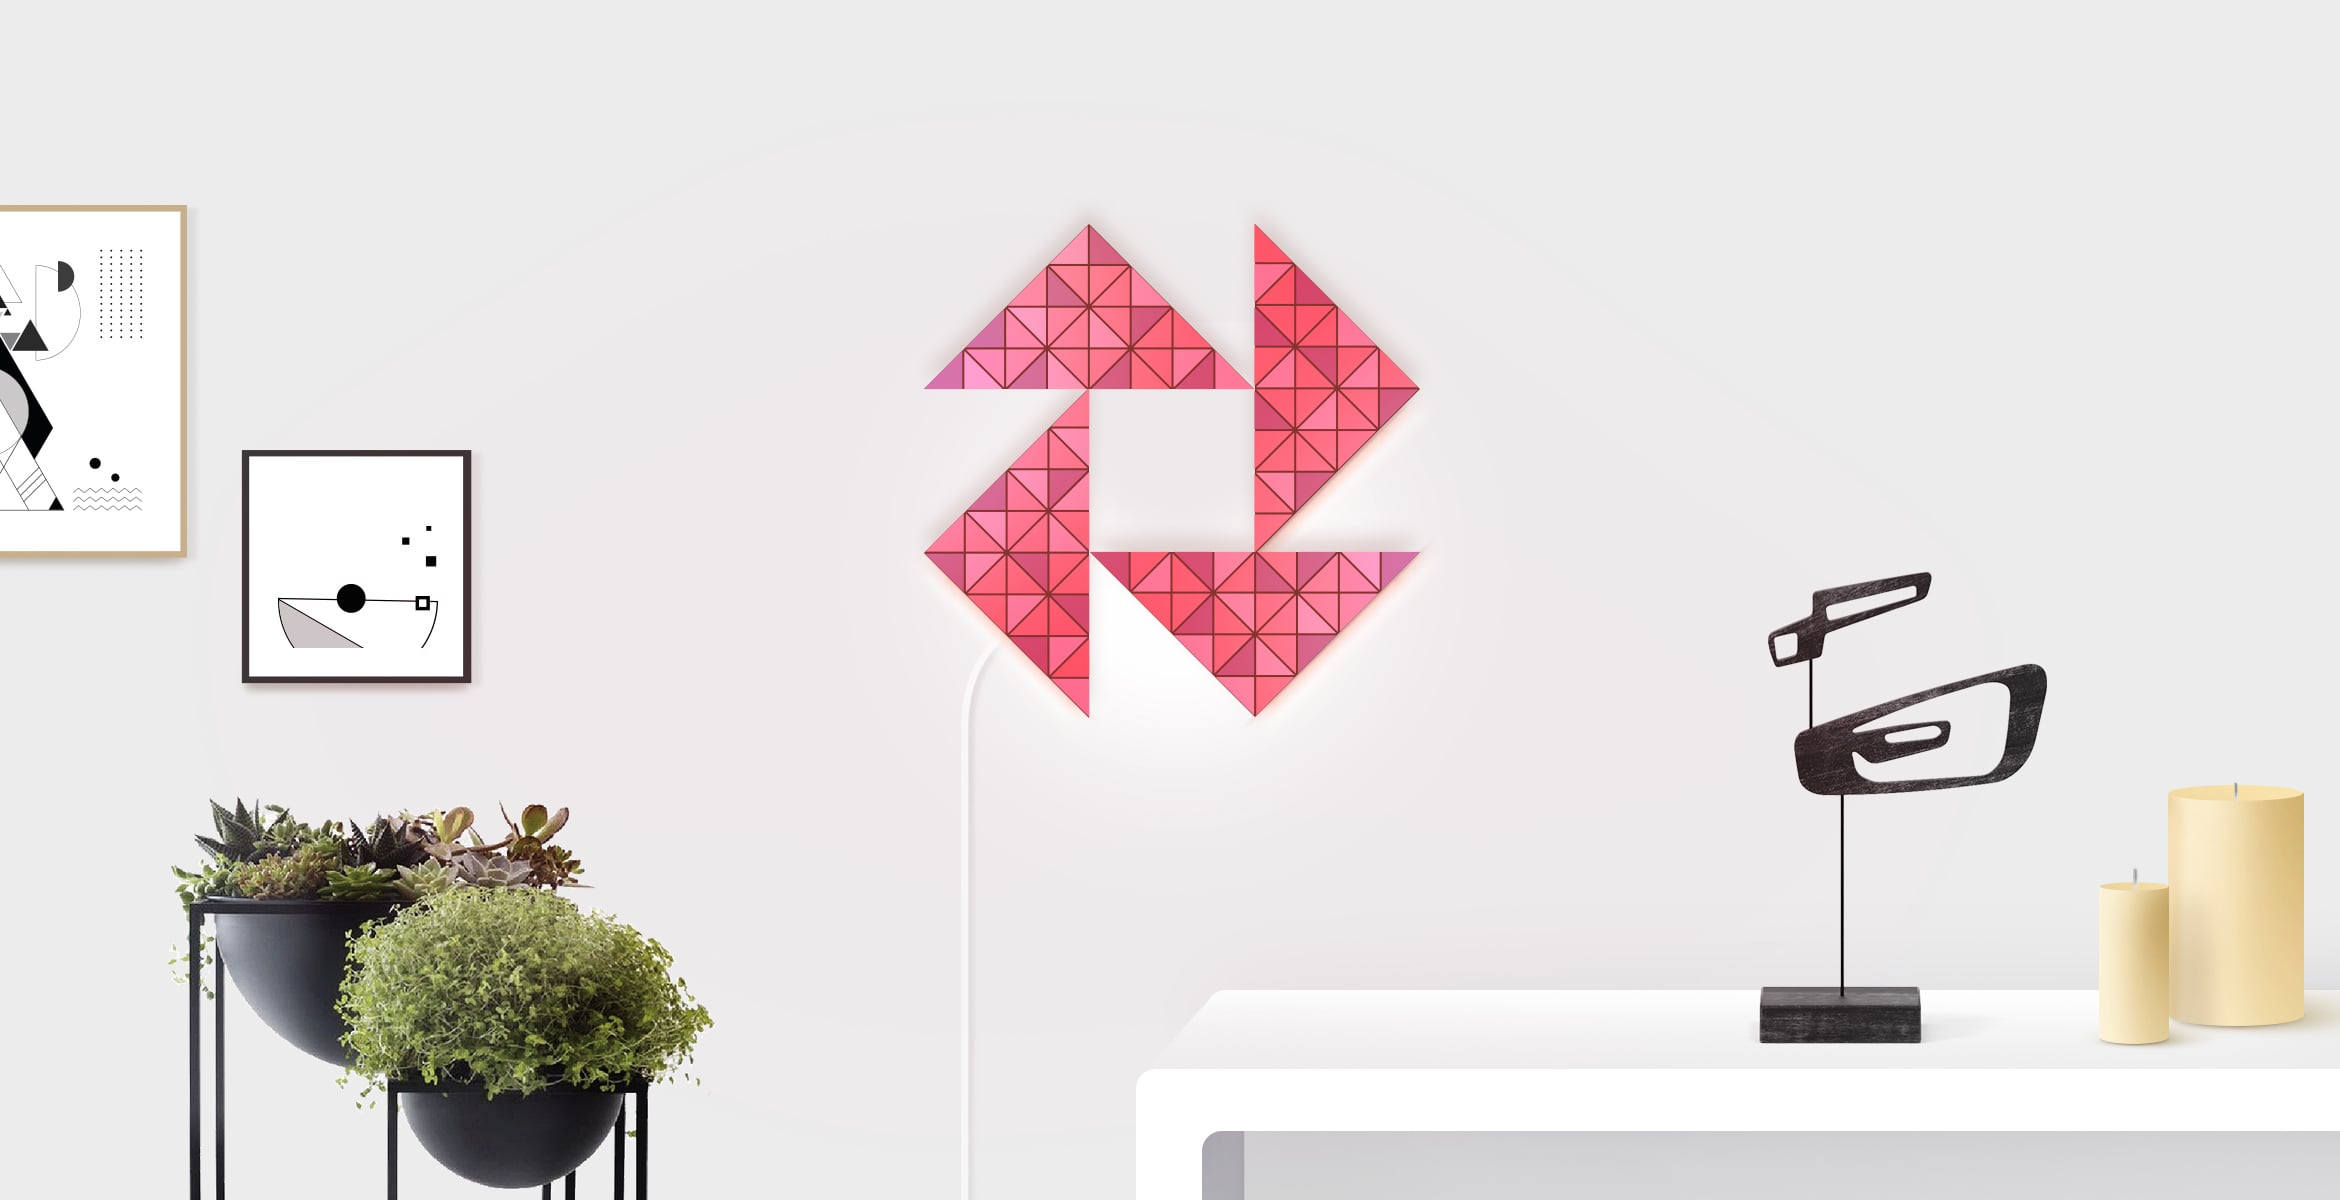 Star shape in red colour, assembled from 4 LaMetric SKY smart light surfaces, complements the room interior